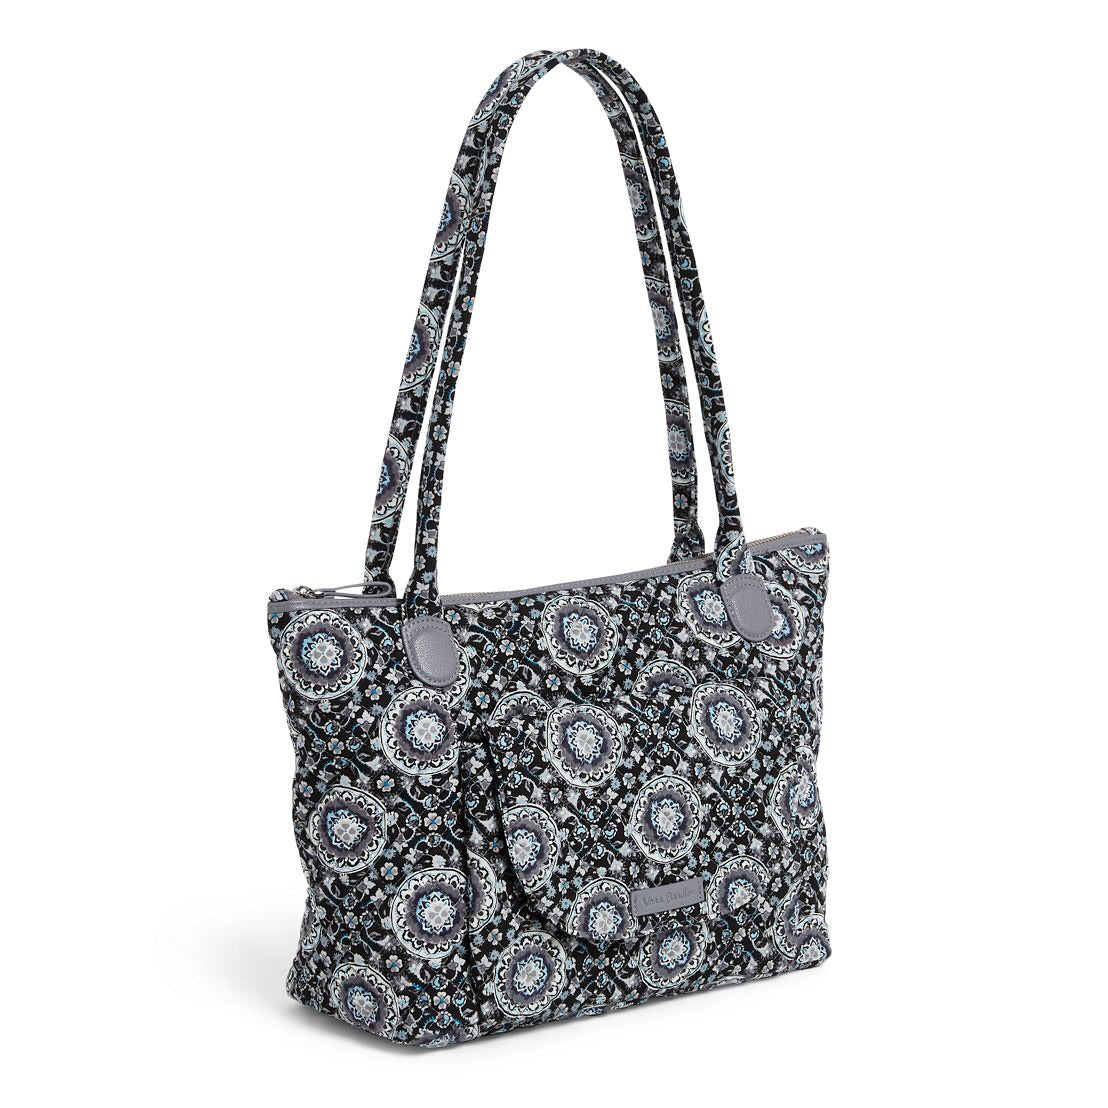 Carson East West Tote - Charcoal Medallion